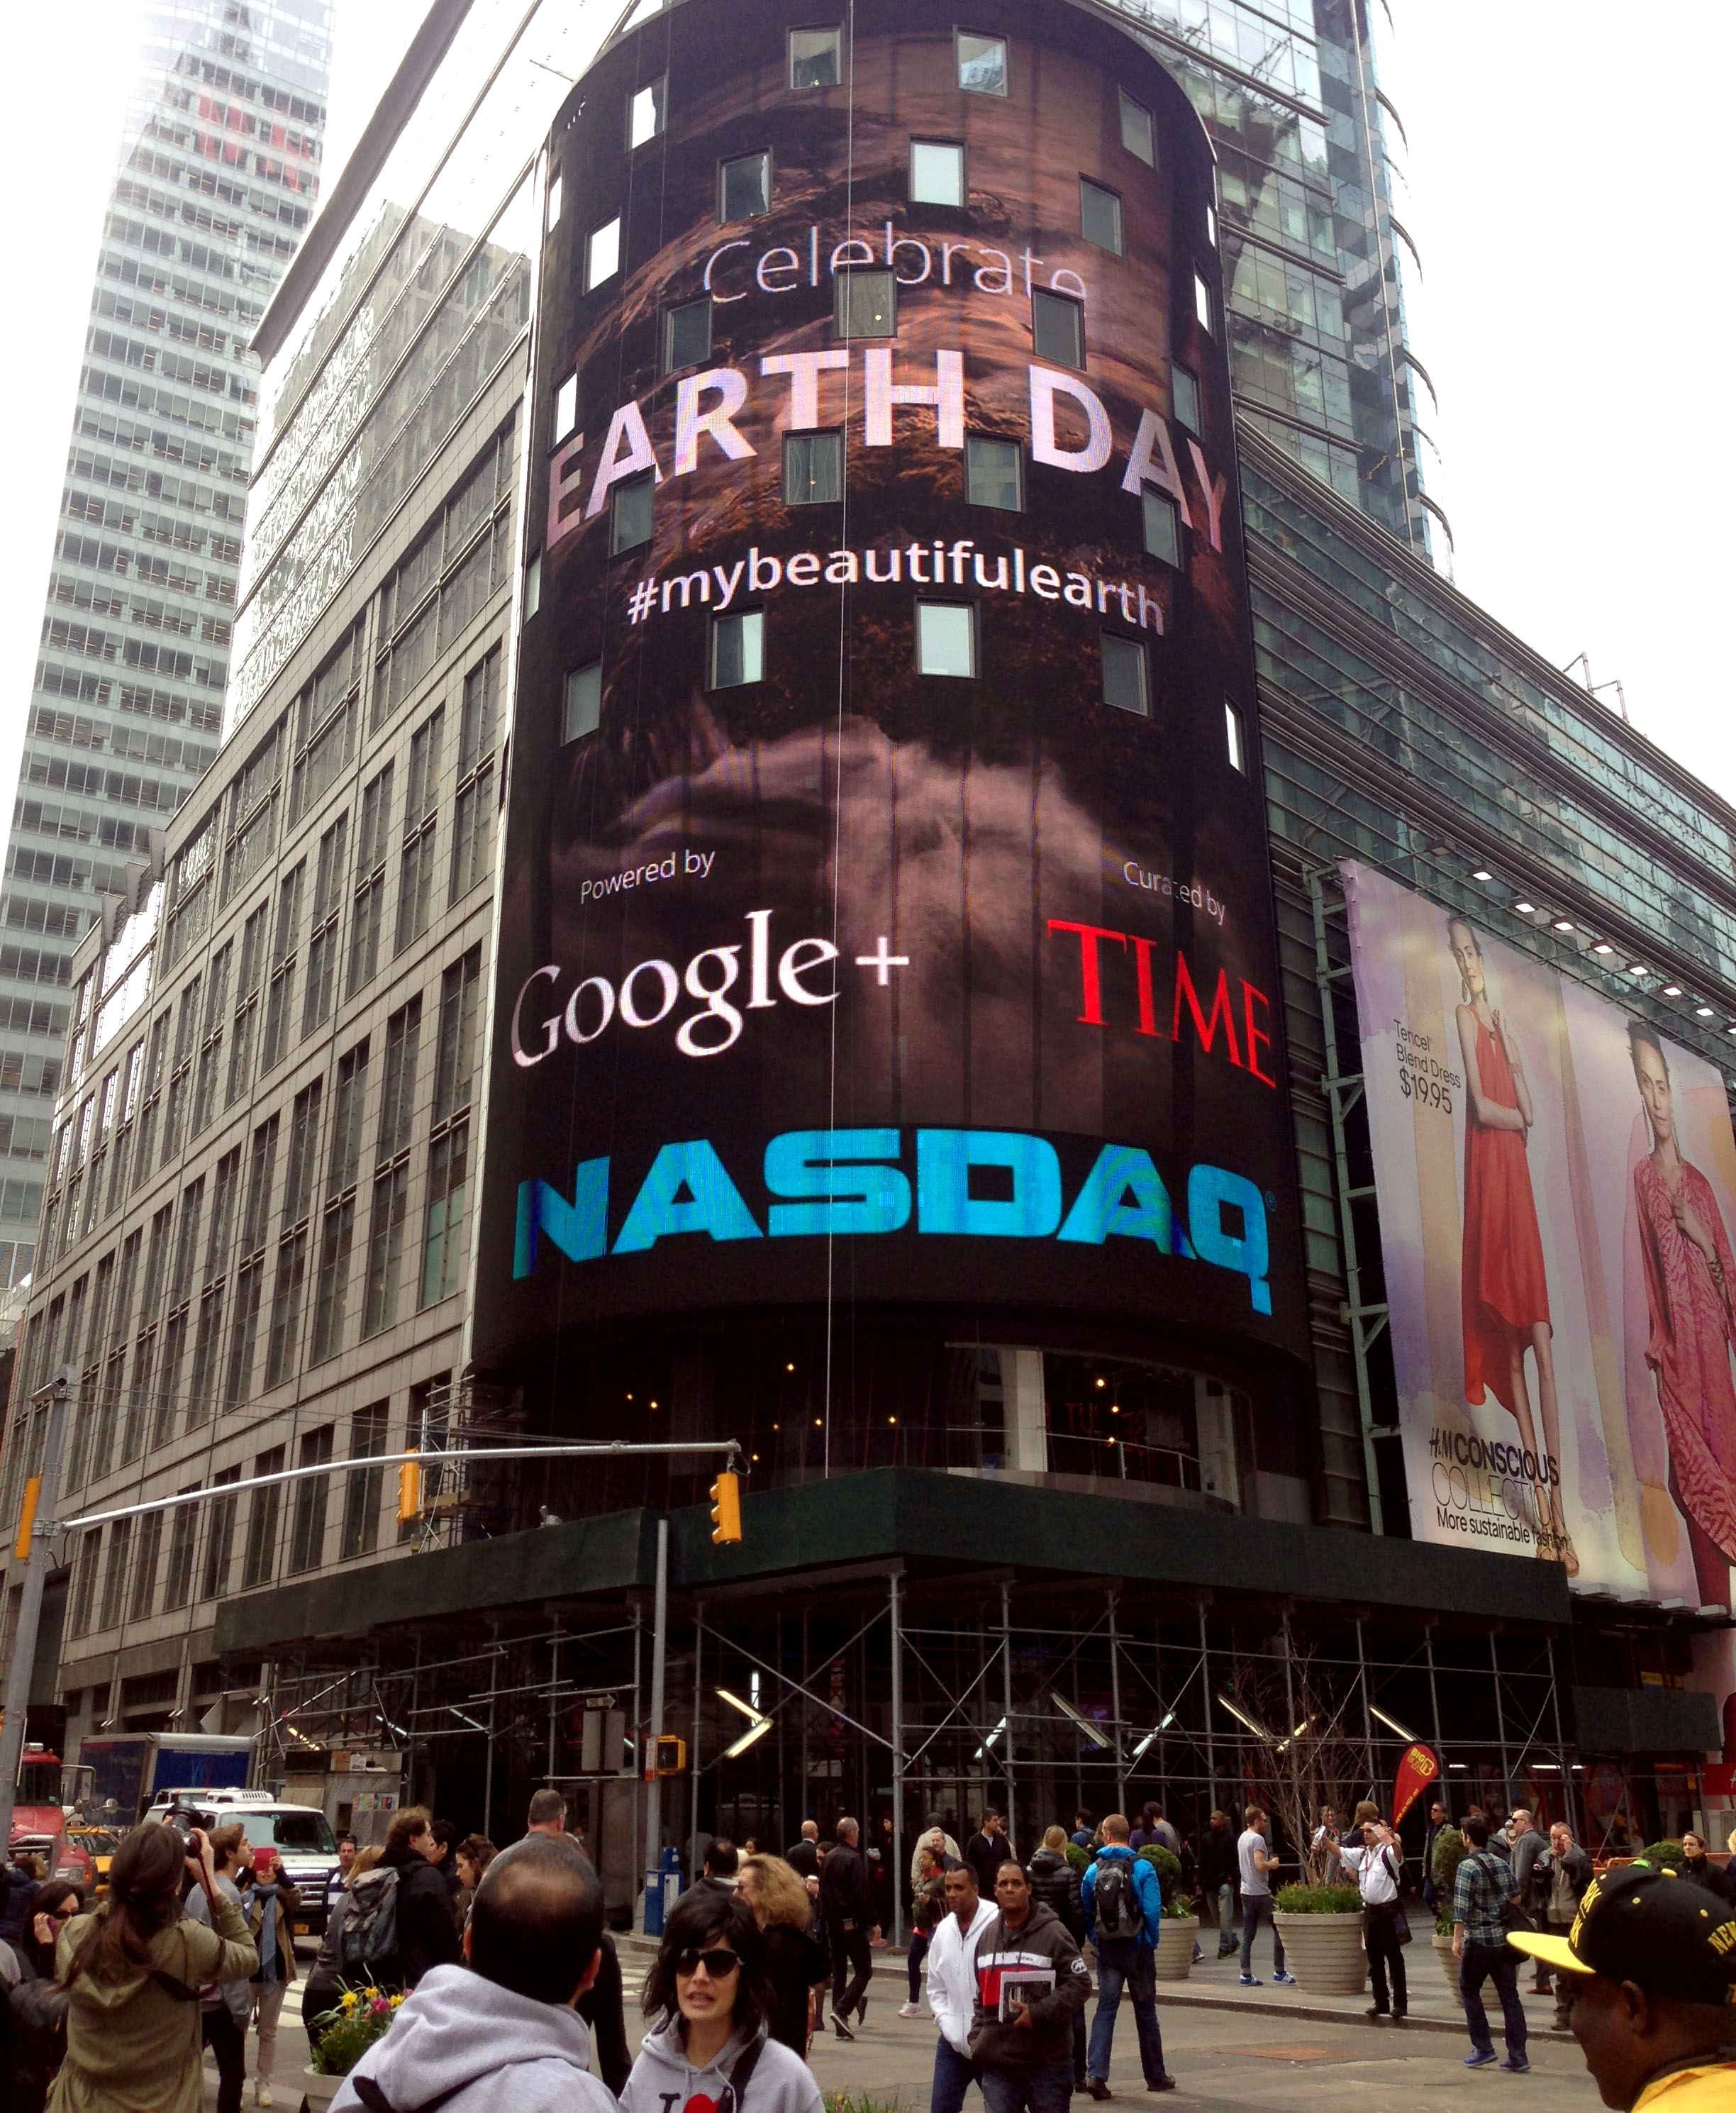 The NASDAQ billboard in Times Square features Google+ users' earth day photos selected by TIME's photo editors.